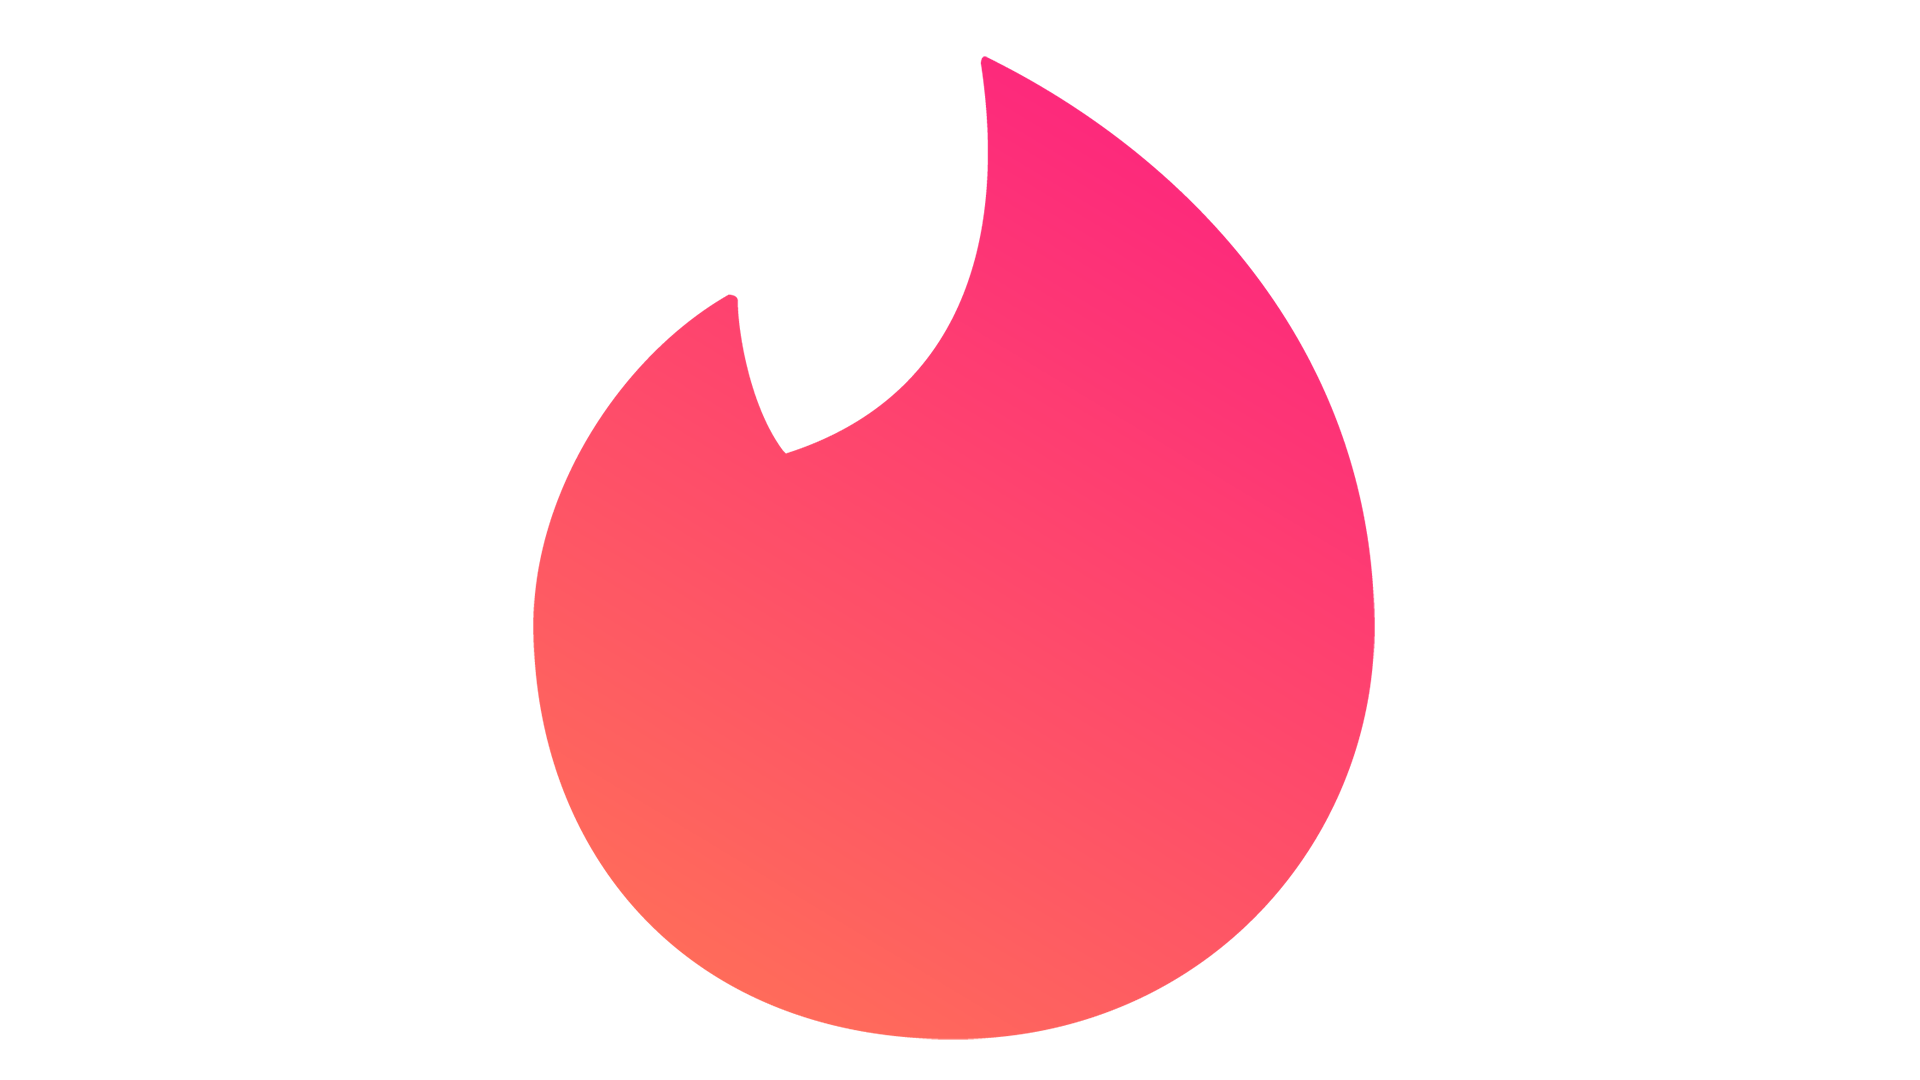 Tinder logo png. Symbol meaning history and